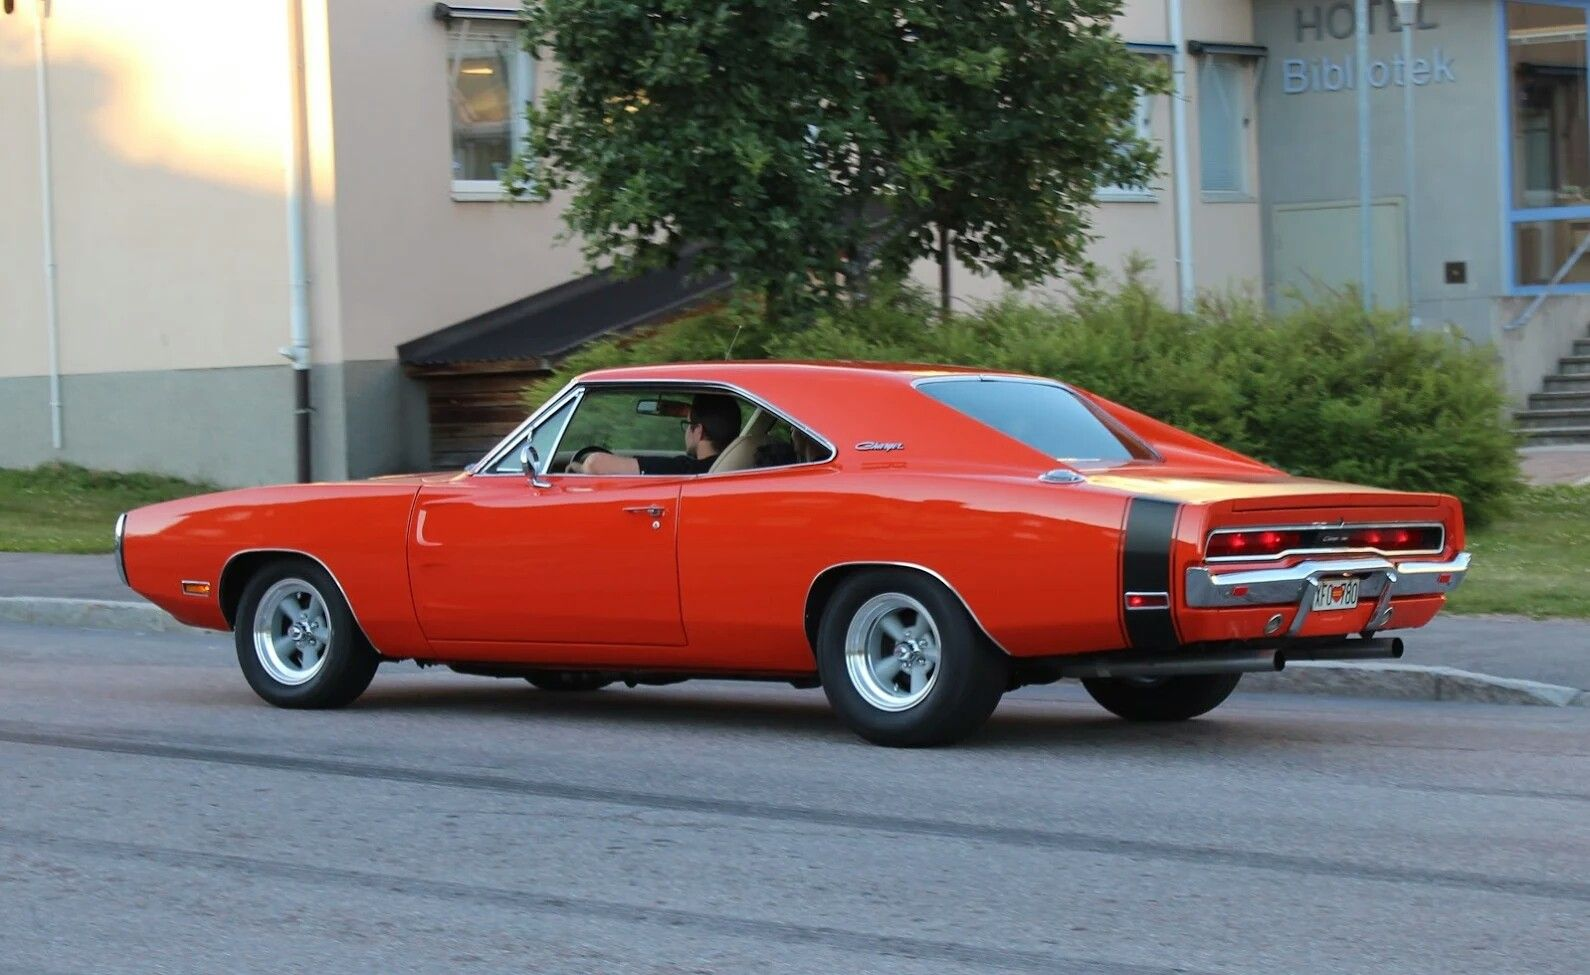 Pin by Jeff Warner on Classic Cars | Pinterest | Mopar, Muscles and ...